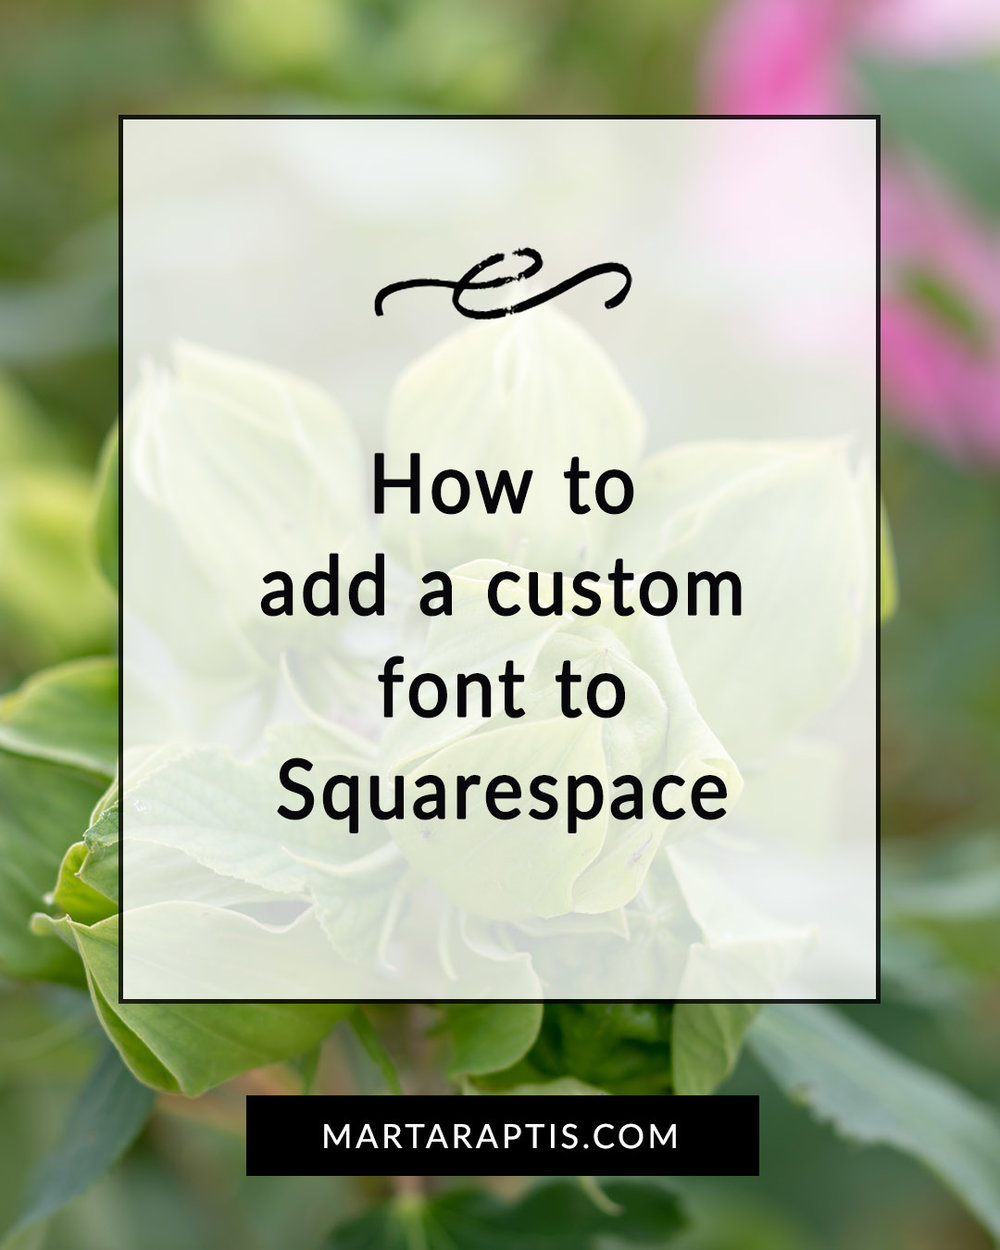 How to add a custom font to Squarespace.jpg